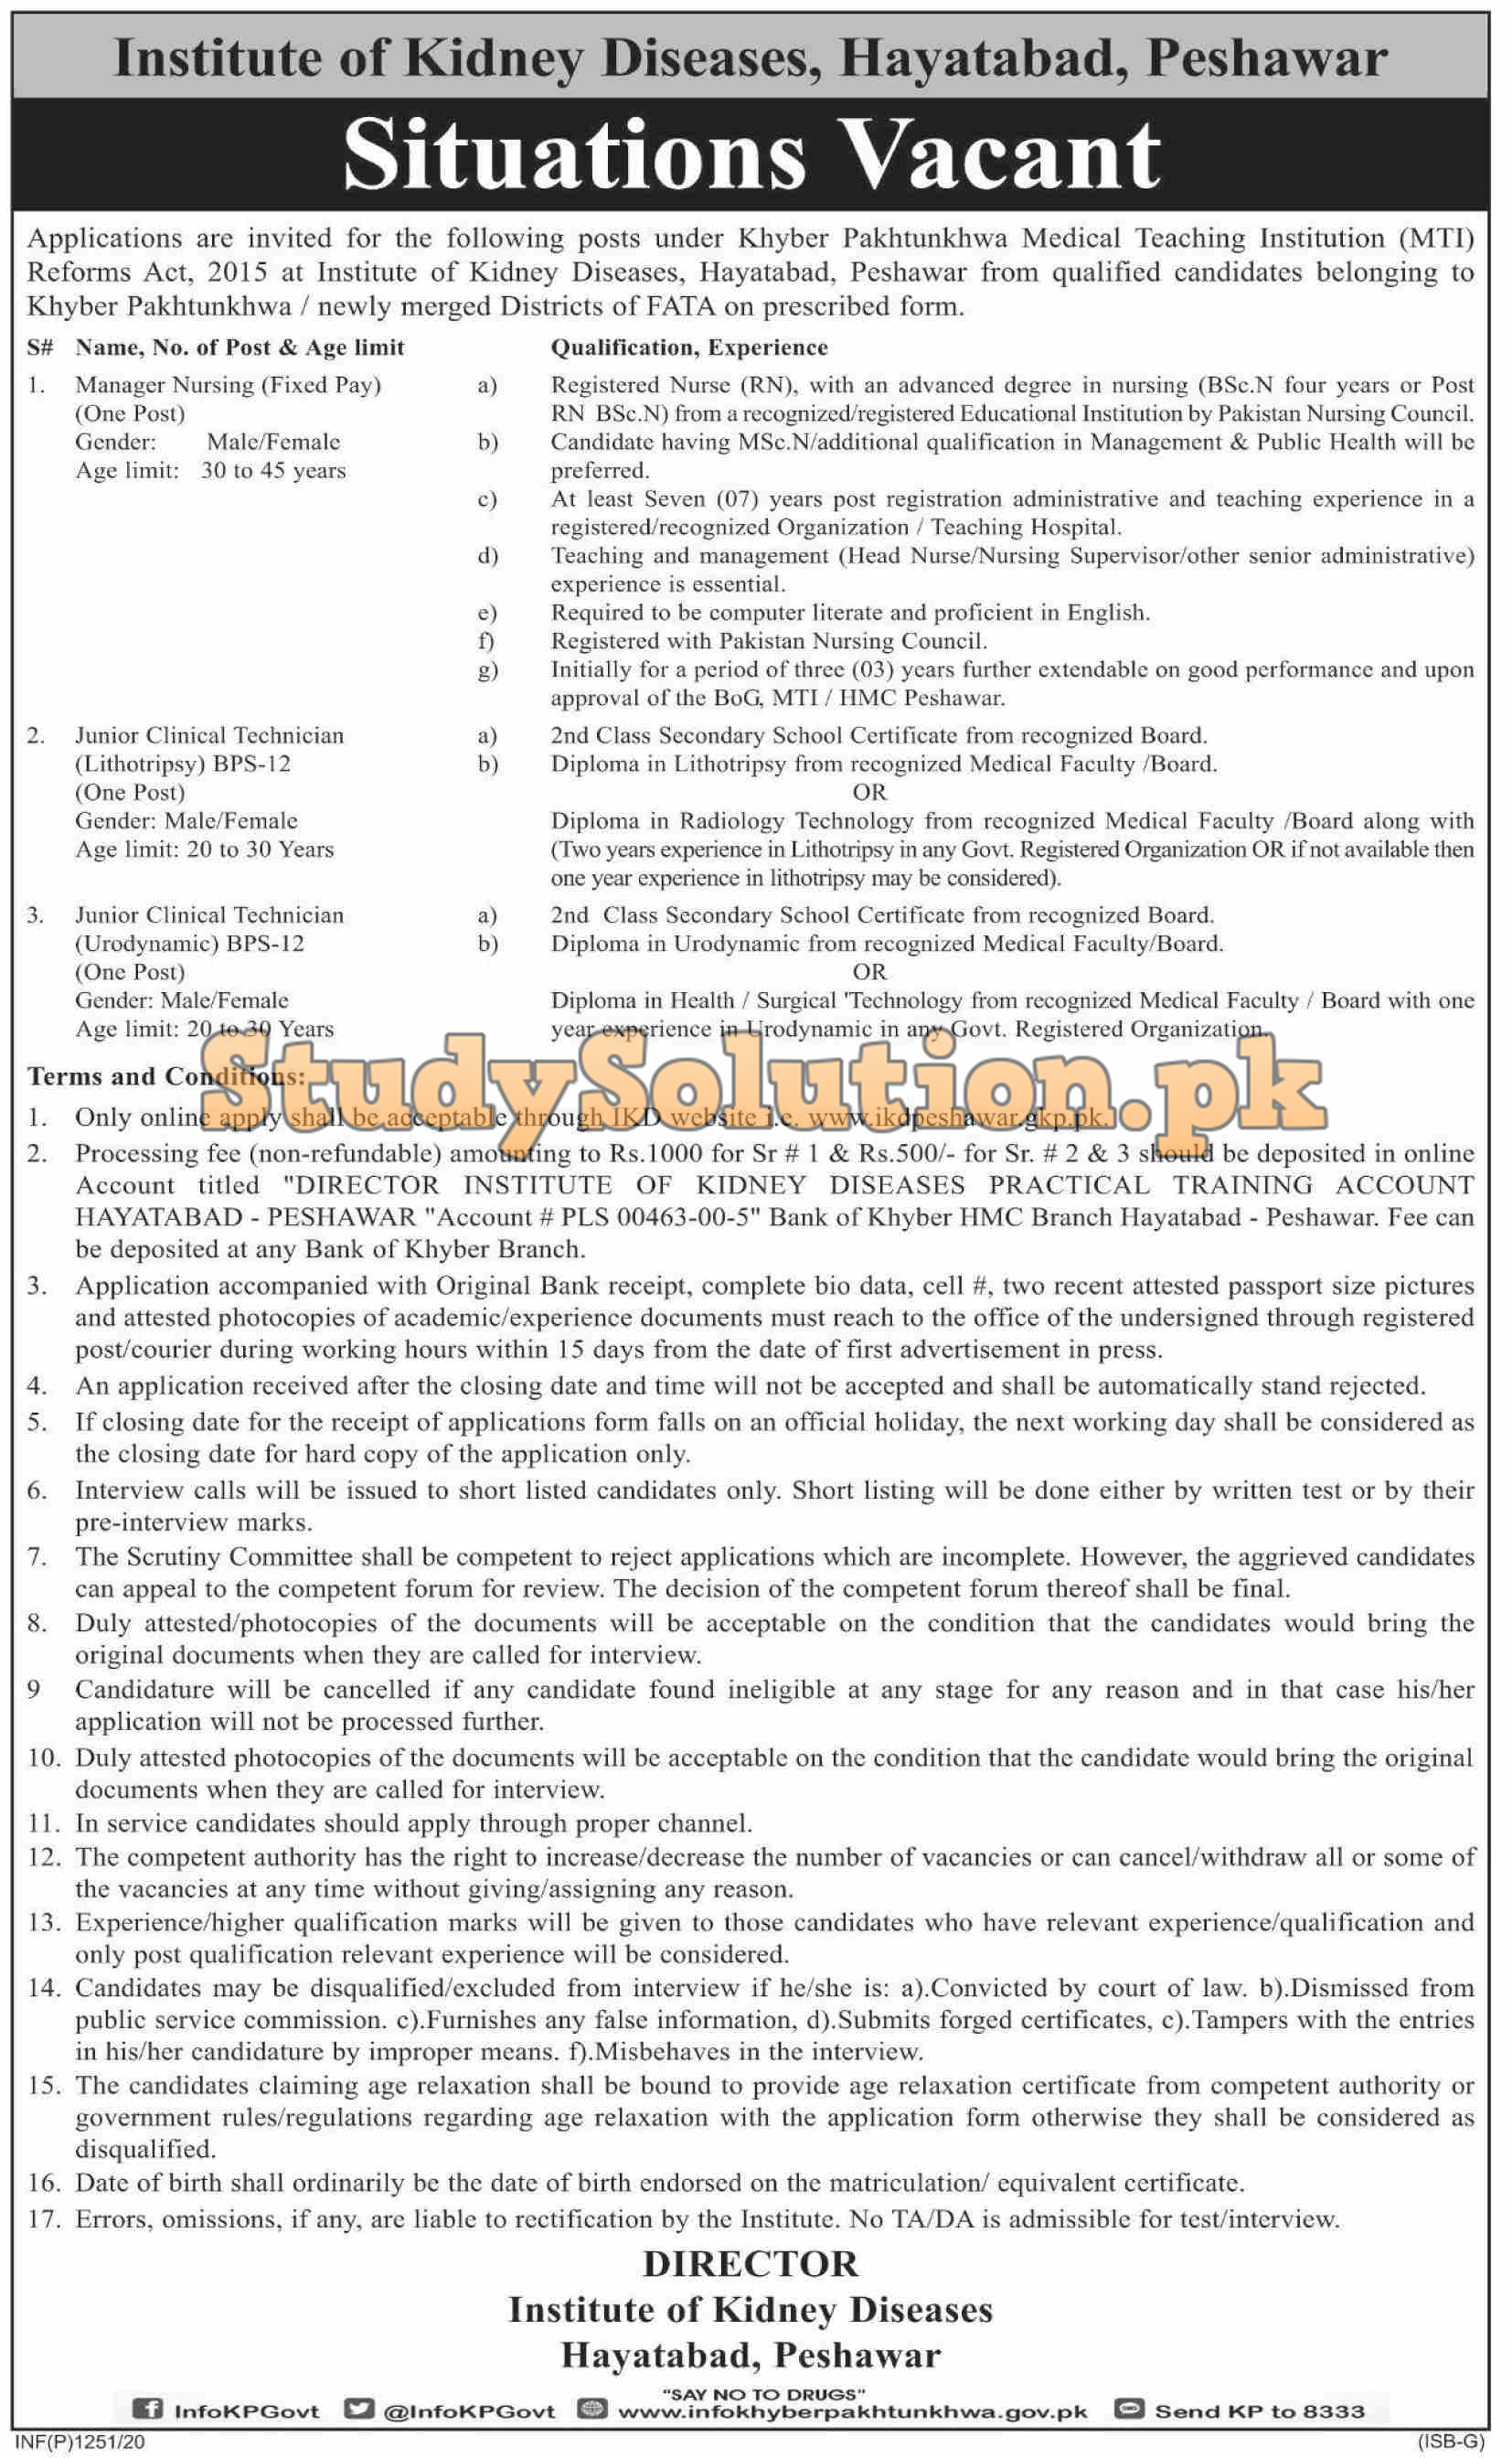 Institute Of Kidney Disease Latest Jobs 2020